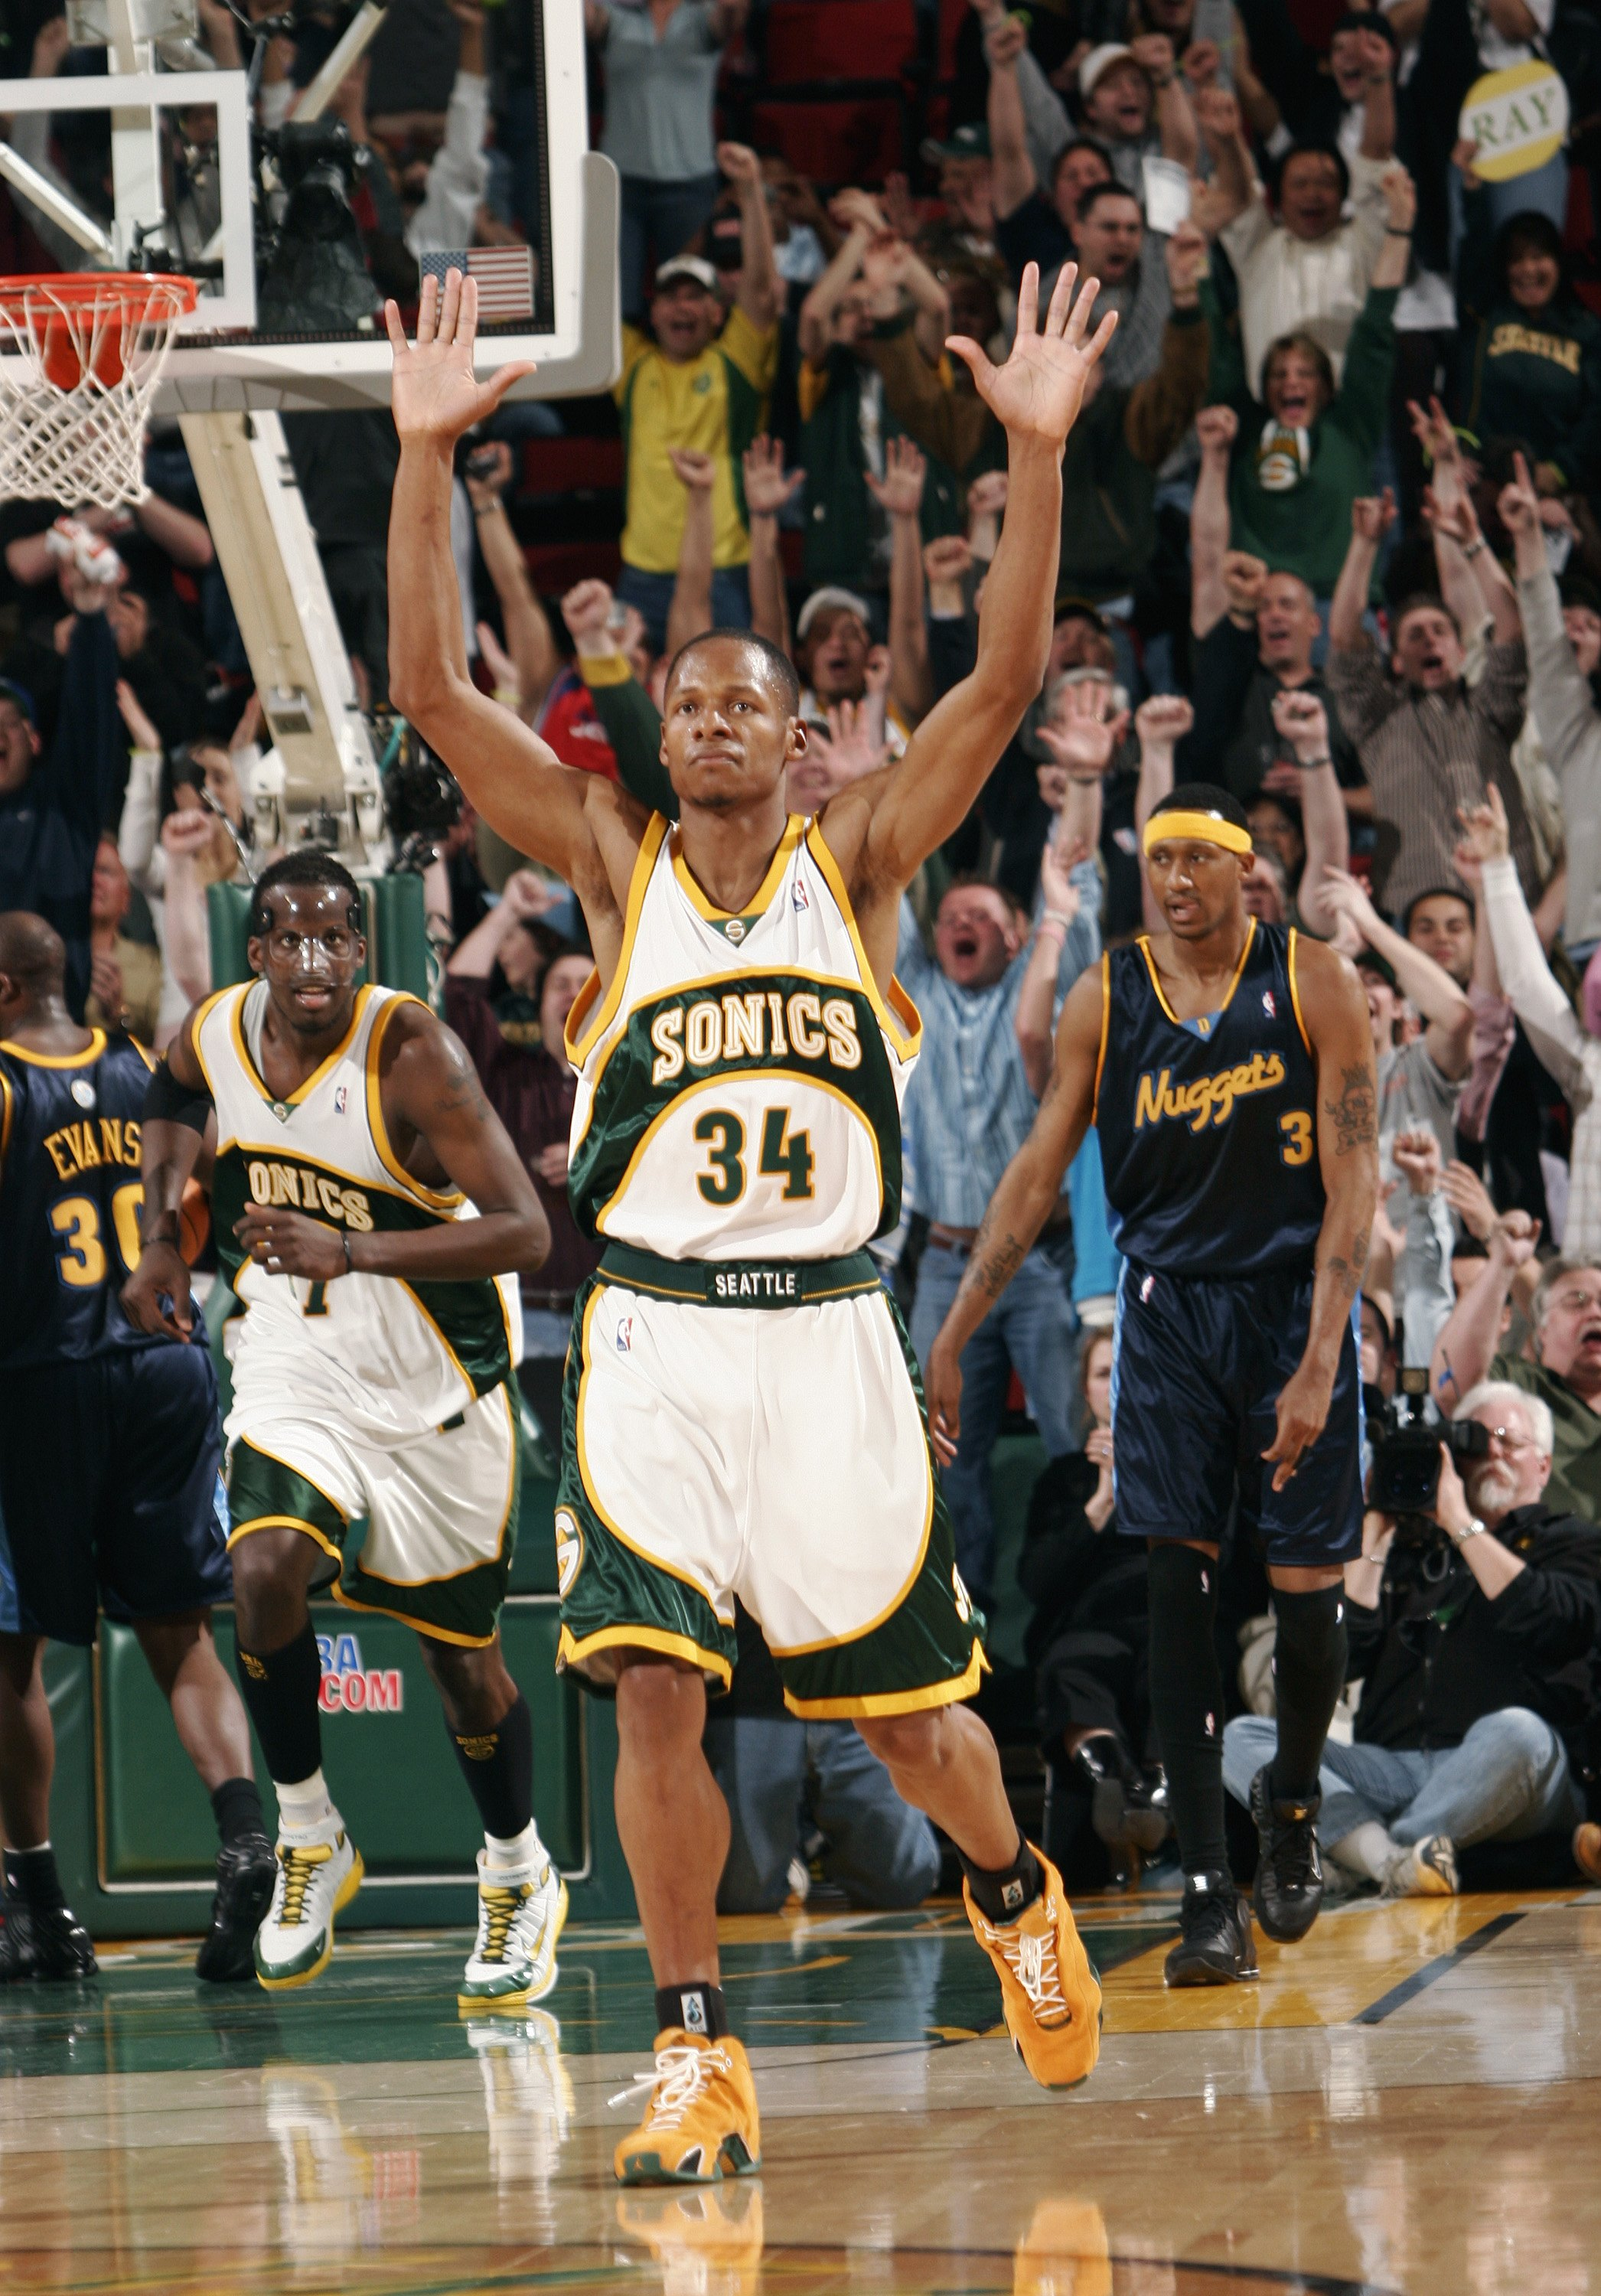 SEATTLE - APRIL 19:  Ray Allen #34 of the Seattle SuperSonics reacts after hitting his sixth three-point shot of the game against the Denver Nuggets, breaking the NBA record for most three-pointers by a player in a season (267), on April 19, 2006 at Key A